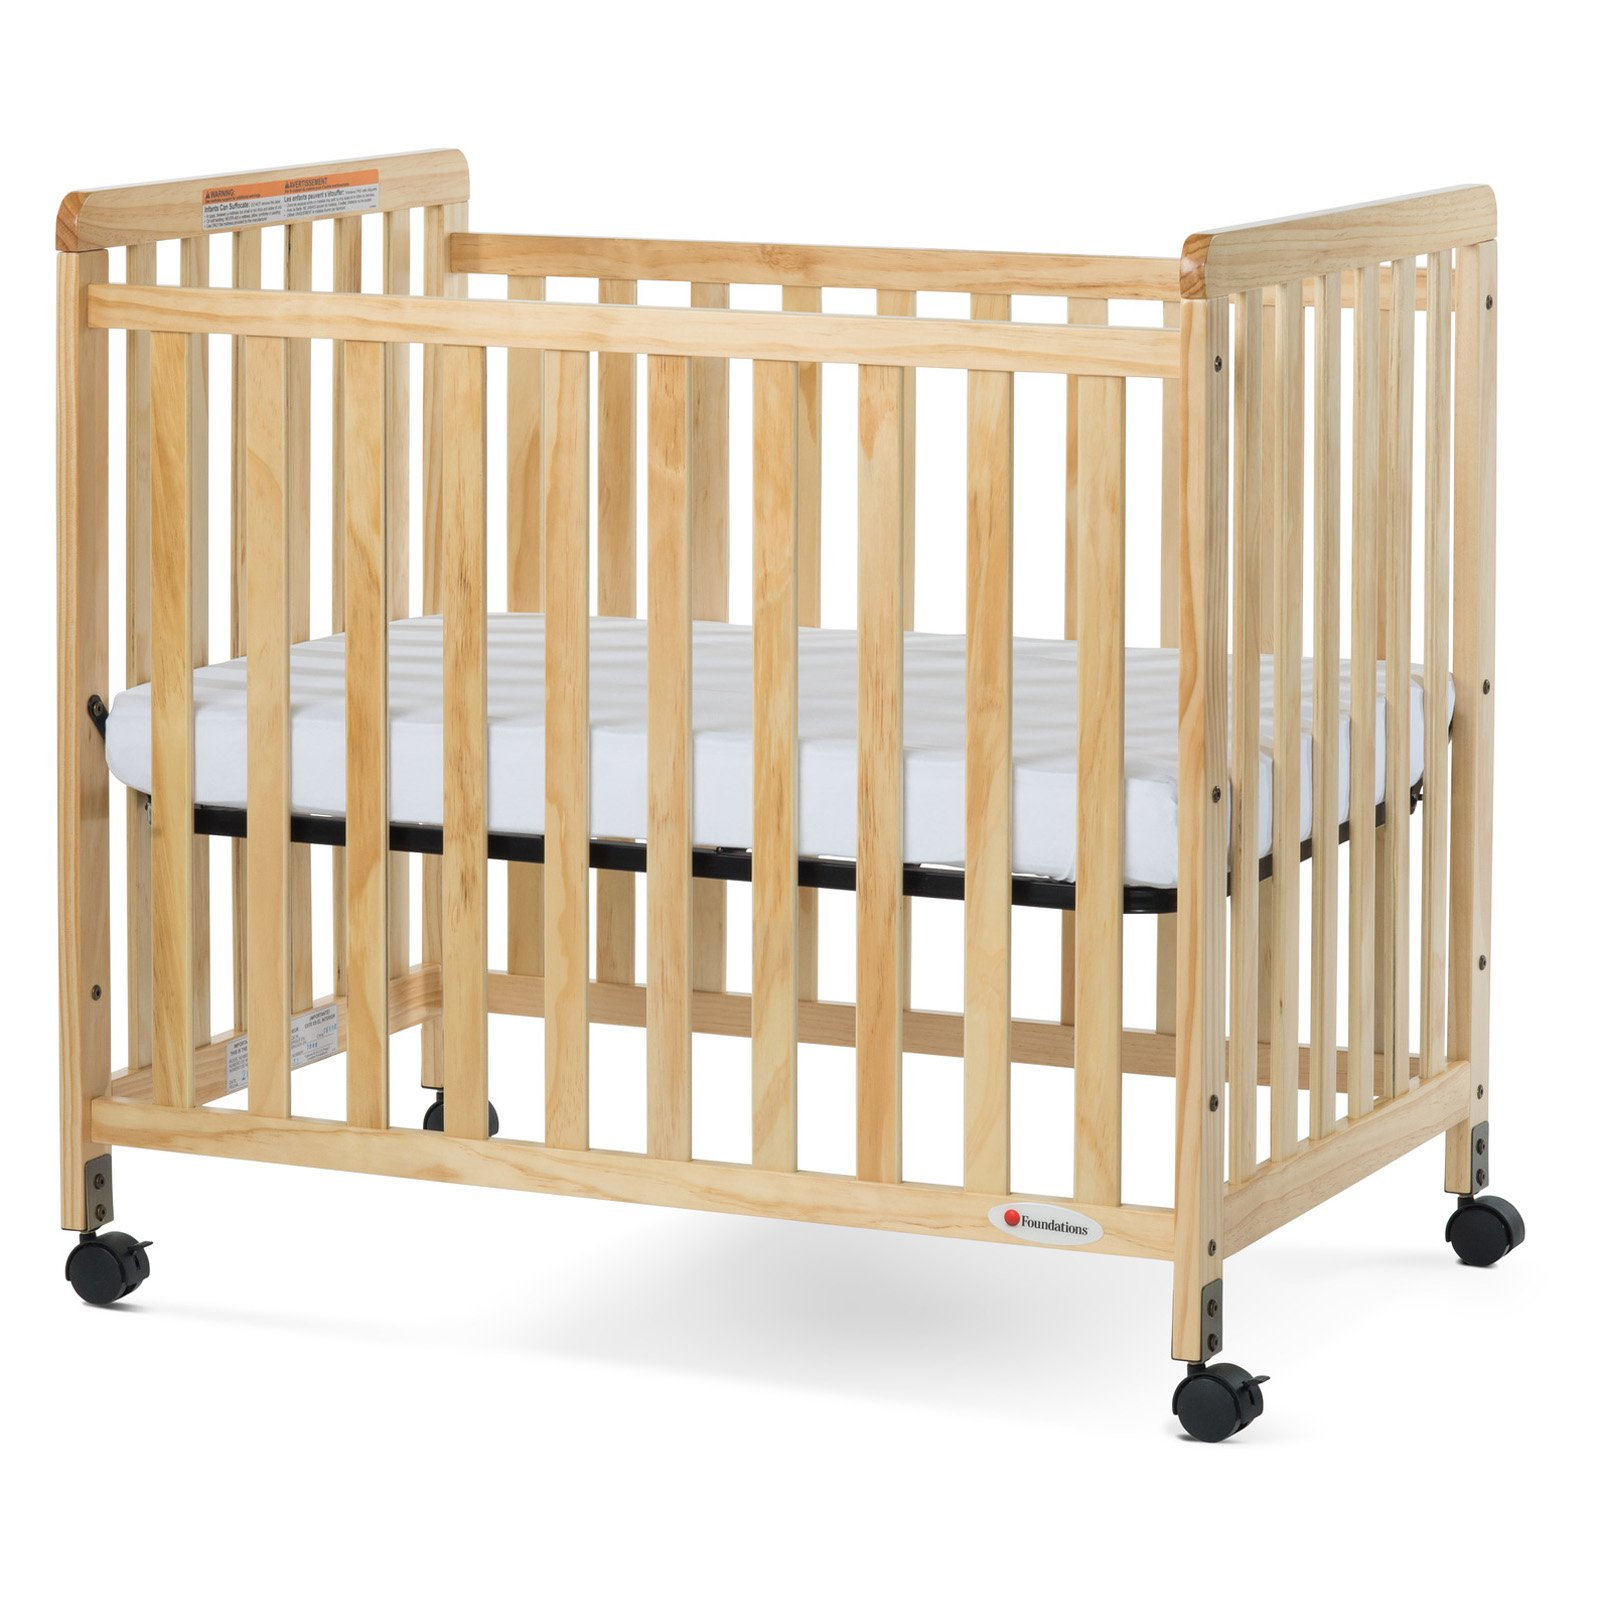 Foundations SafetyCraft Slatted Compact Crib